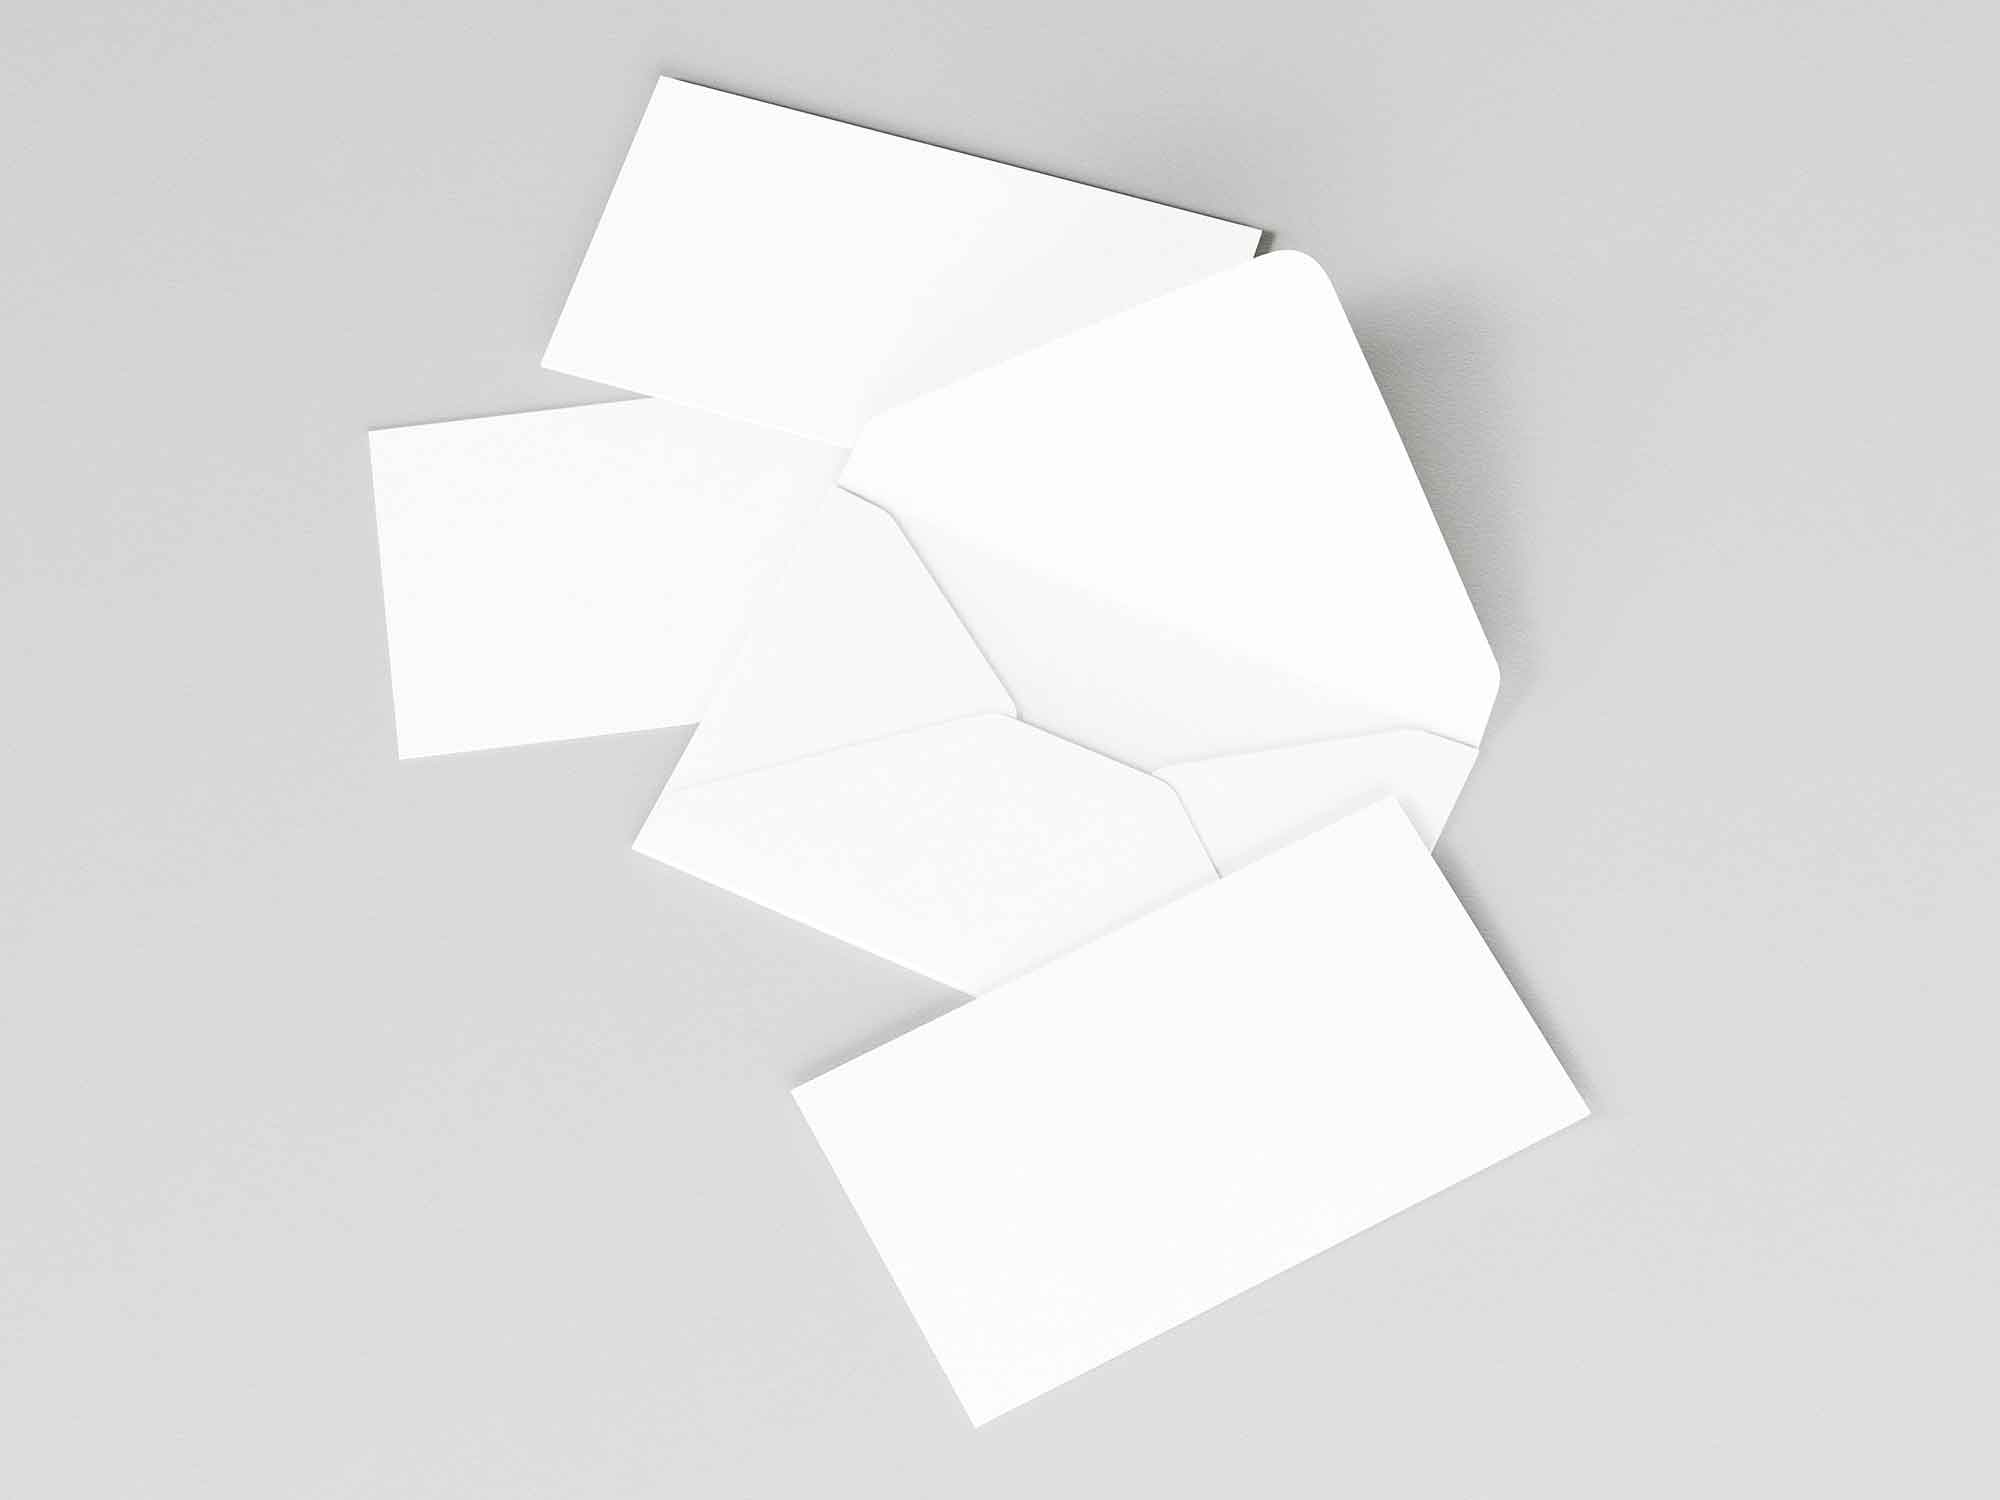 Envelope and Business Cards Mockup 2